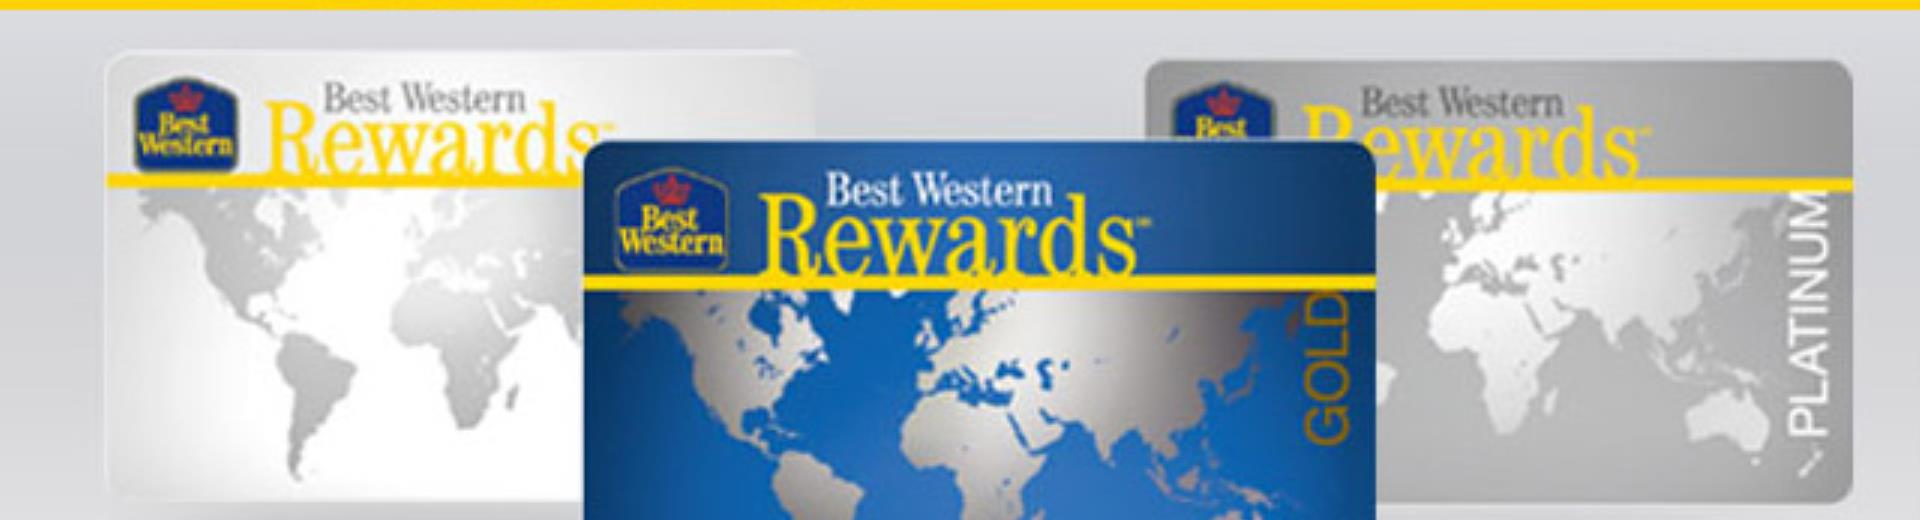 Check out the special rates for Best Western Rewards Members! Join now for free!